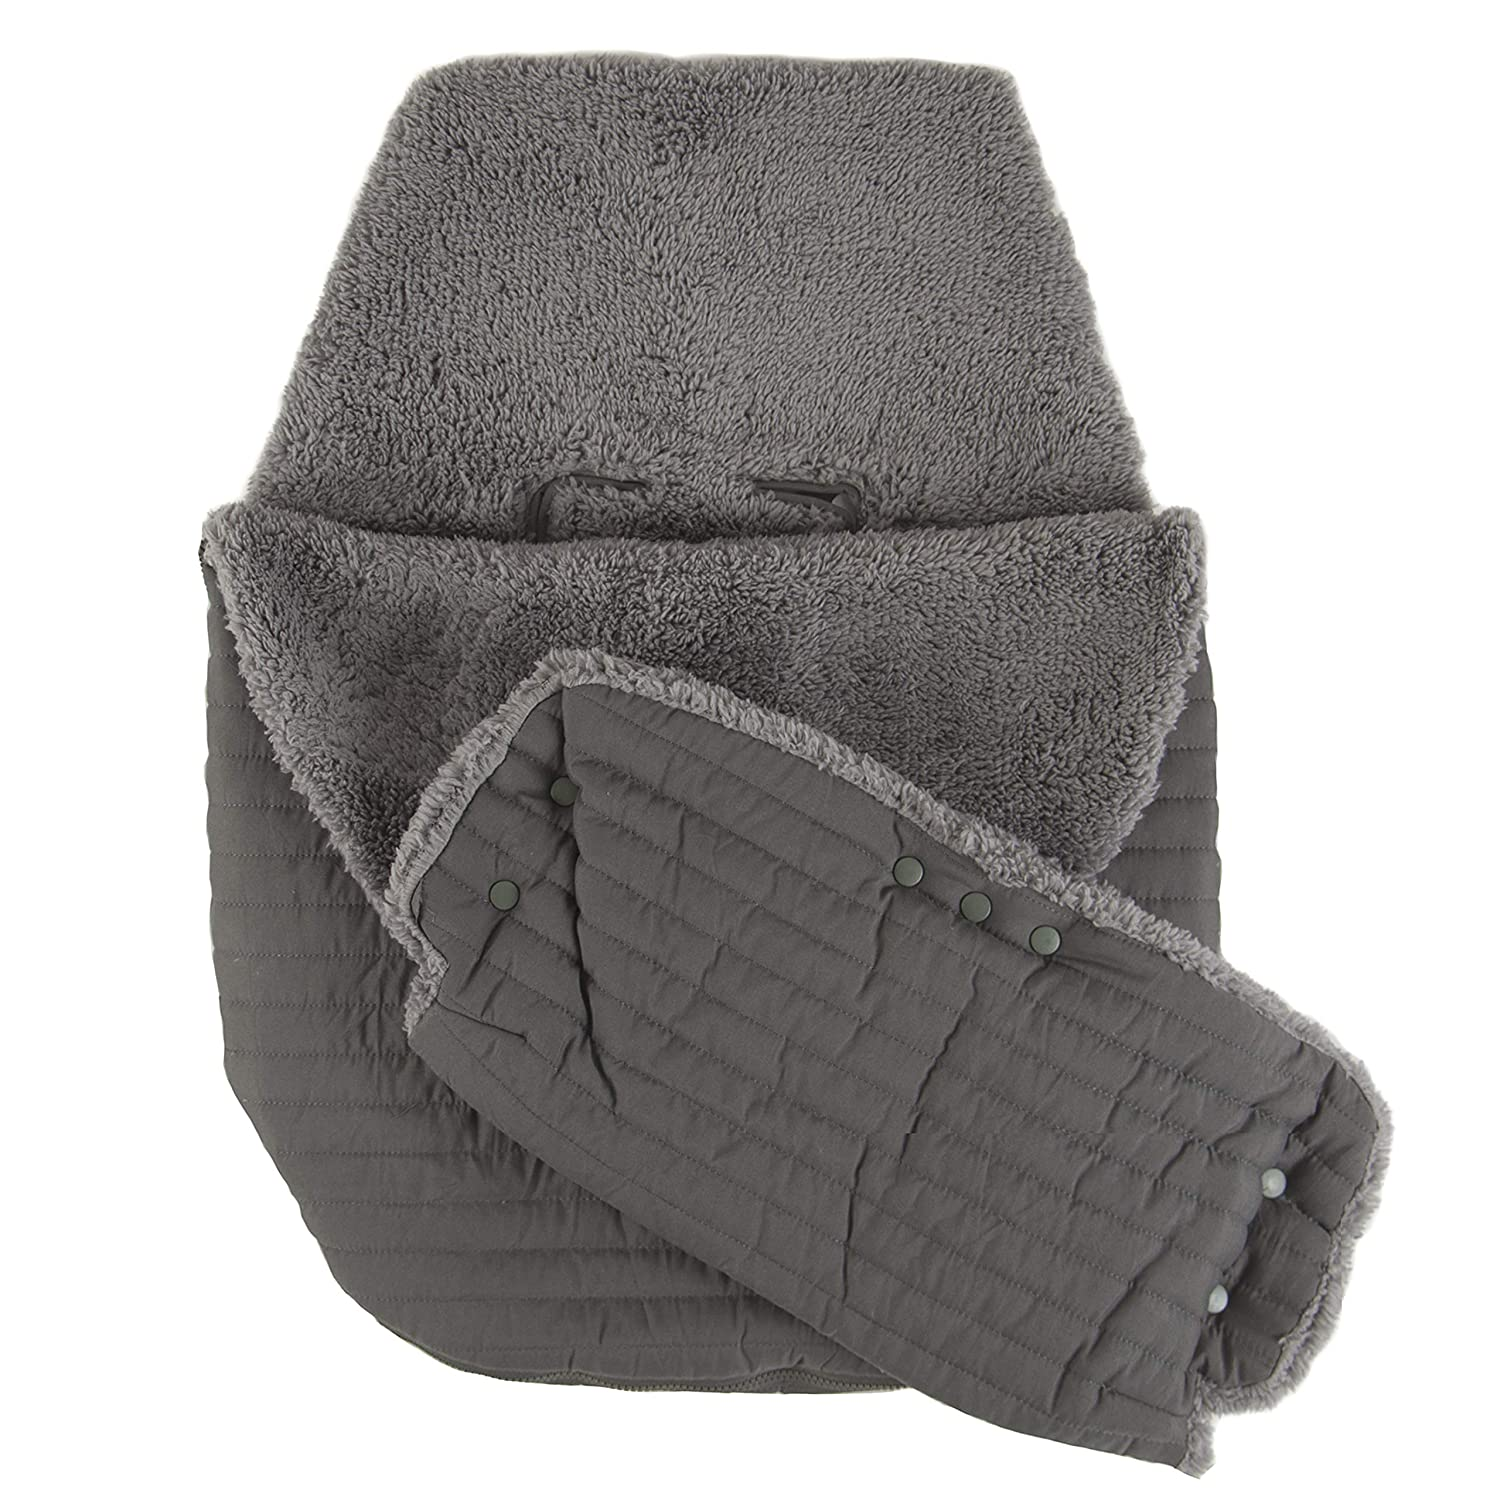 Tadpoles Quilted Stroller & Car Seat Cover withHand Mitt, Dark Grey